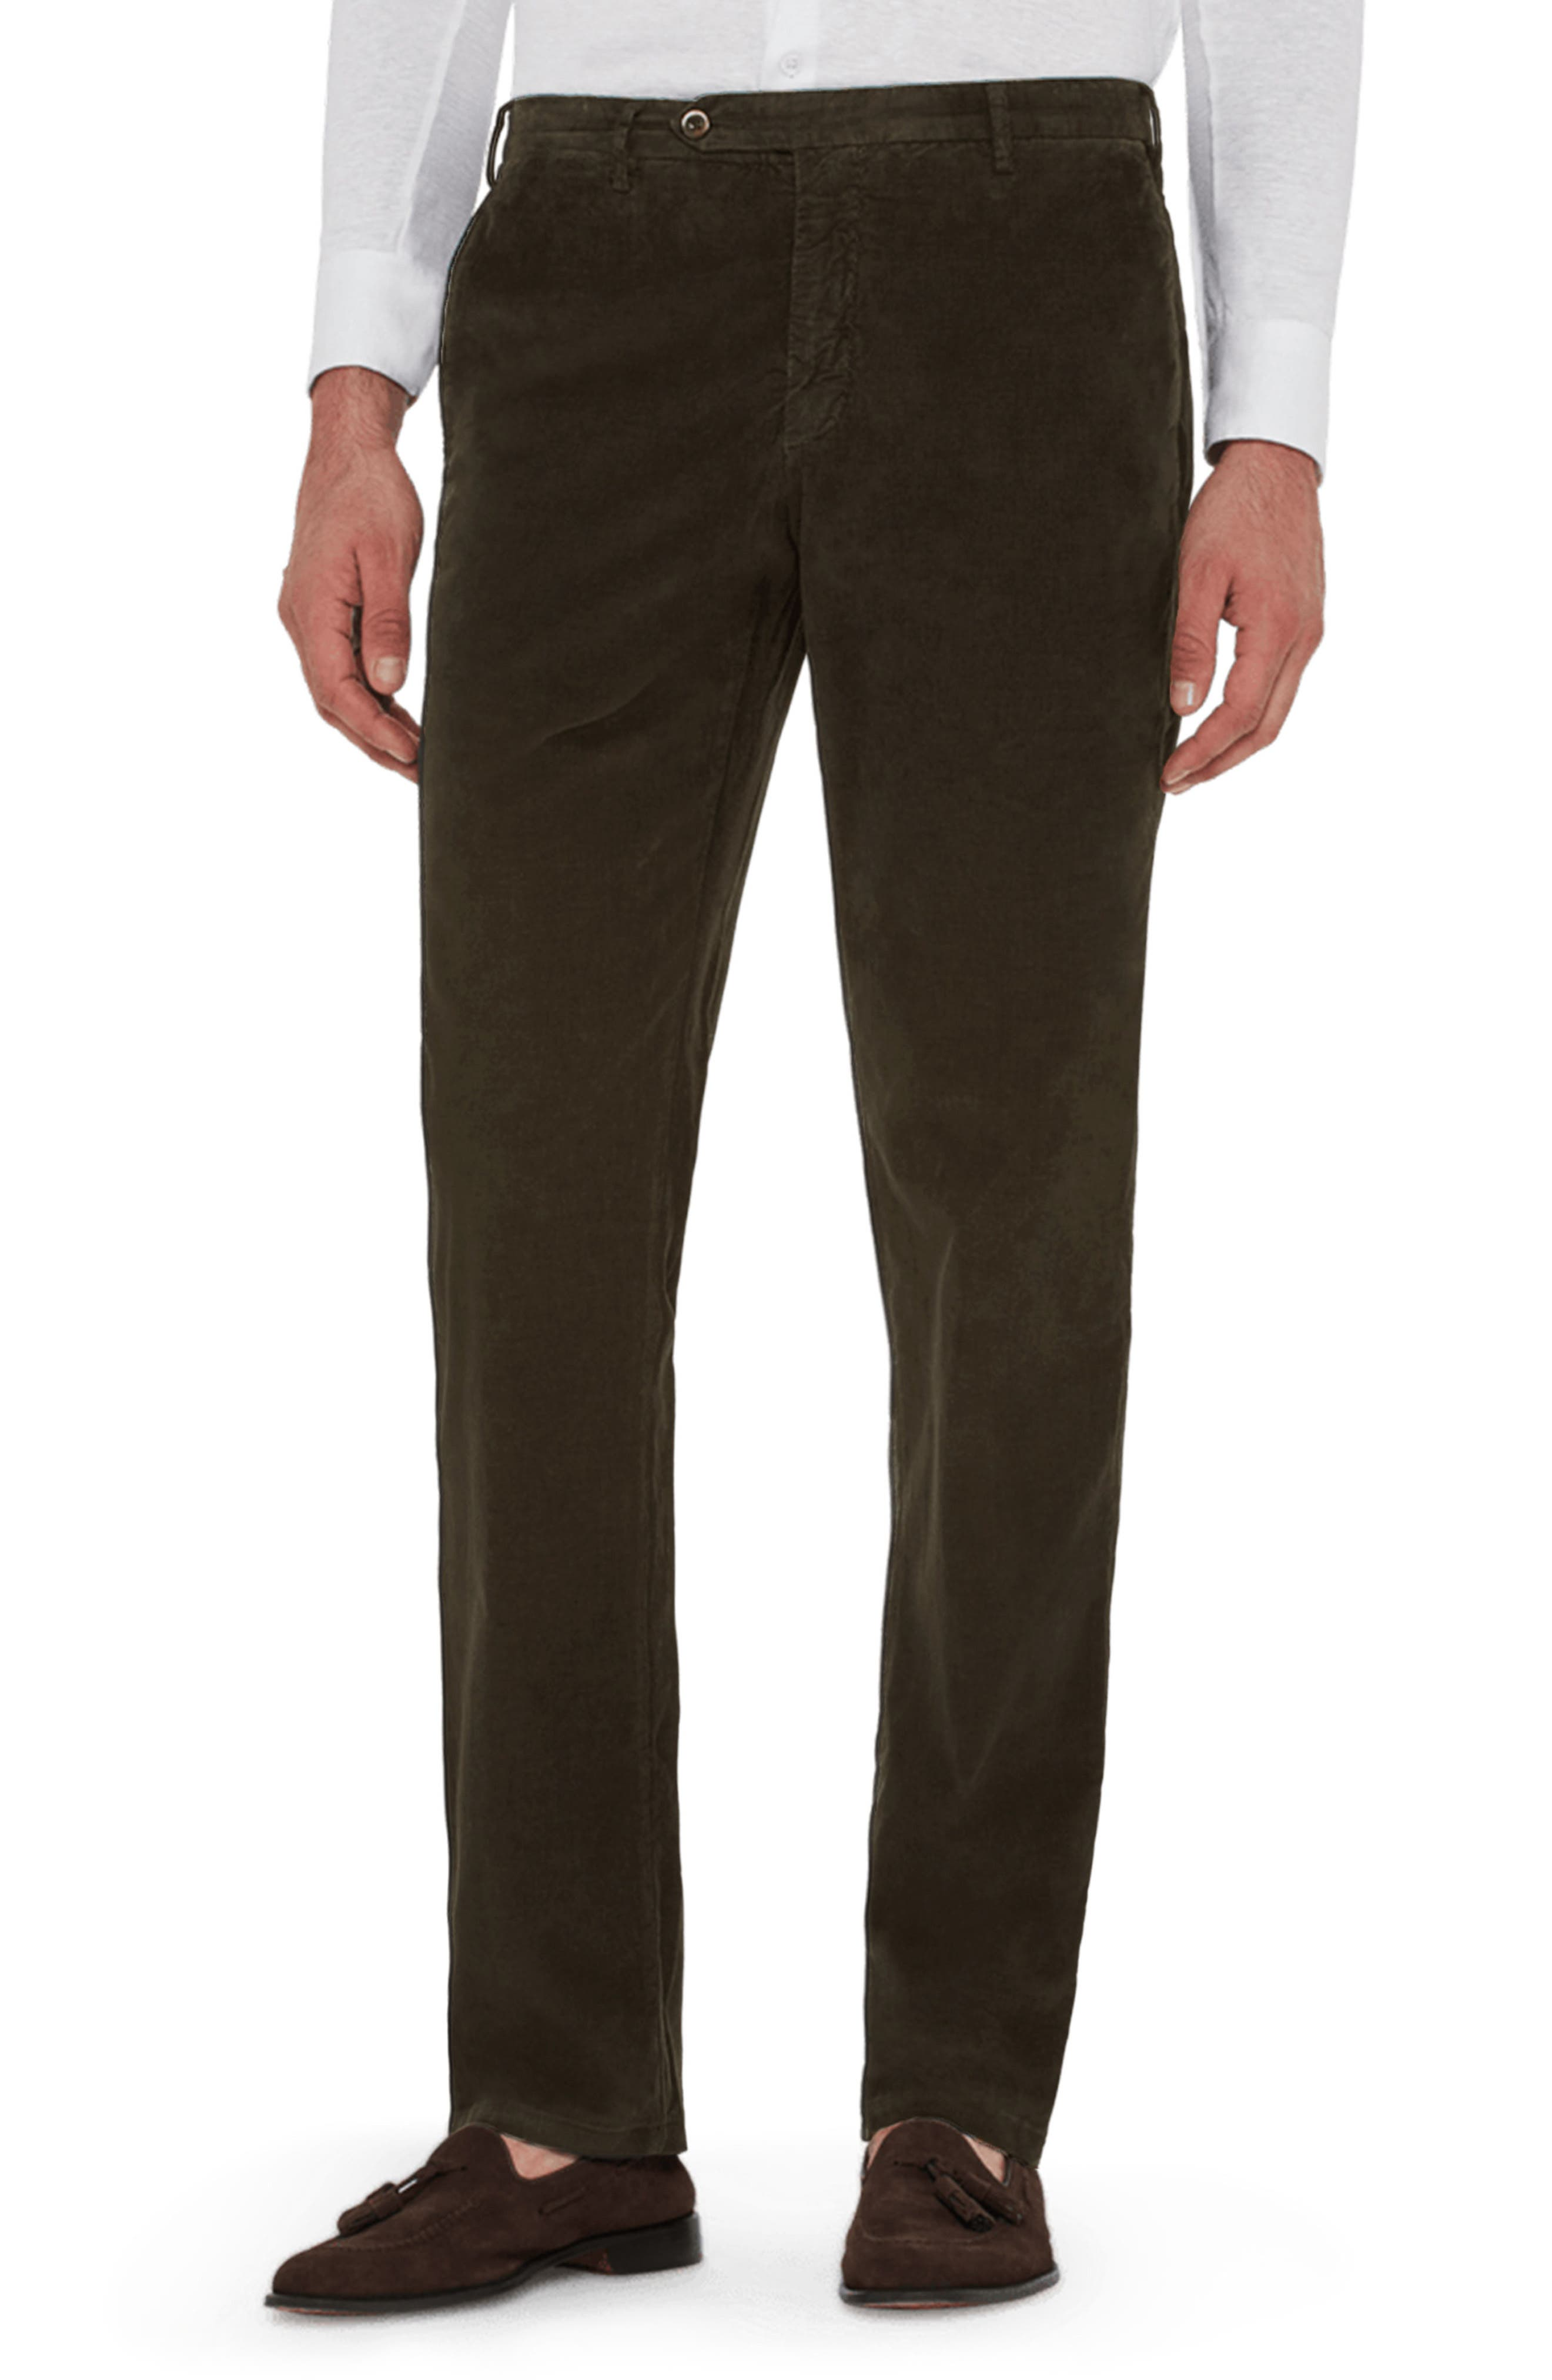 ZANELLA Curtis Flat Front Stretch Corduroy Cotton Trousers in Olive